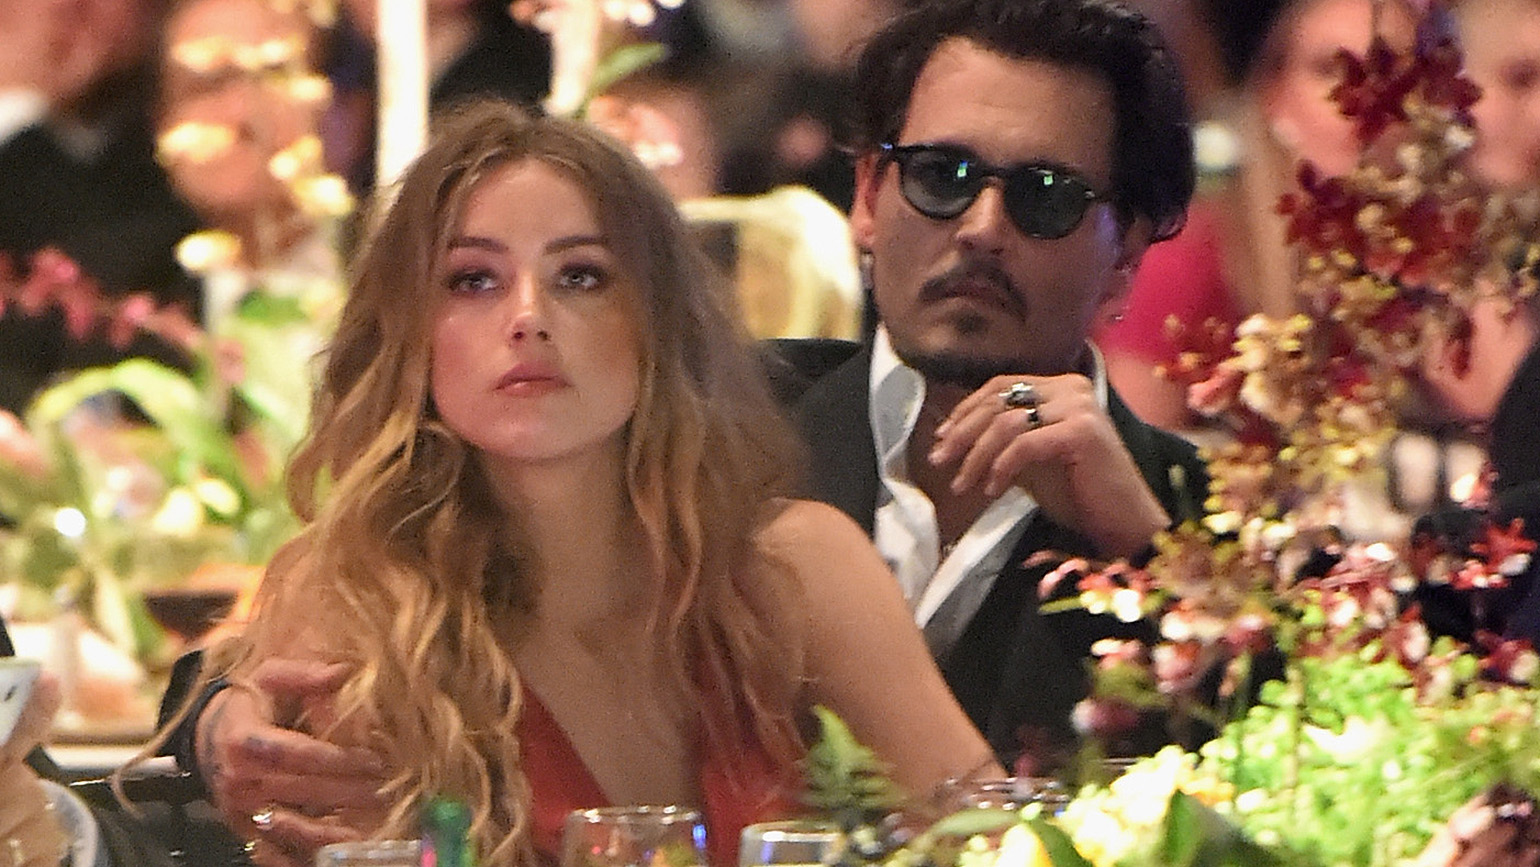 Johnny Depp and Amanda Heard